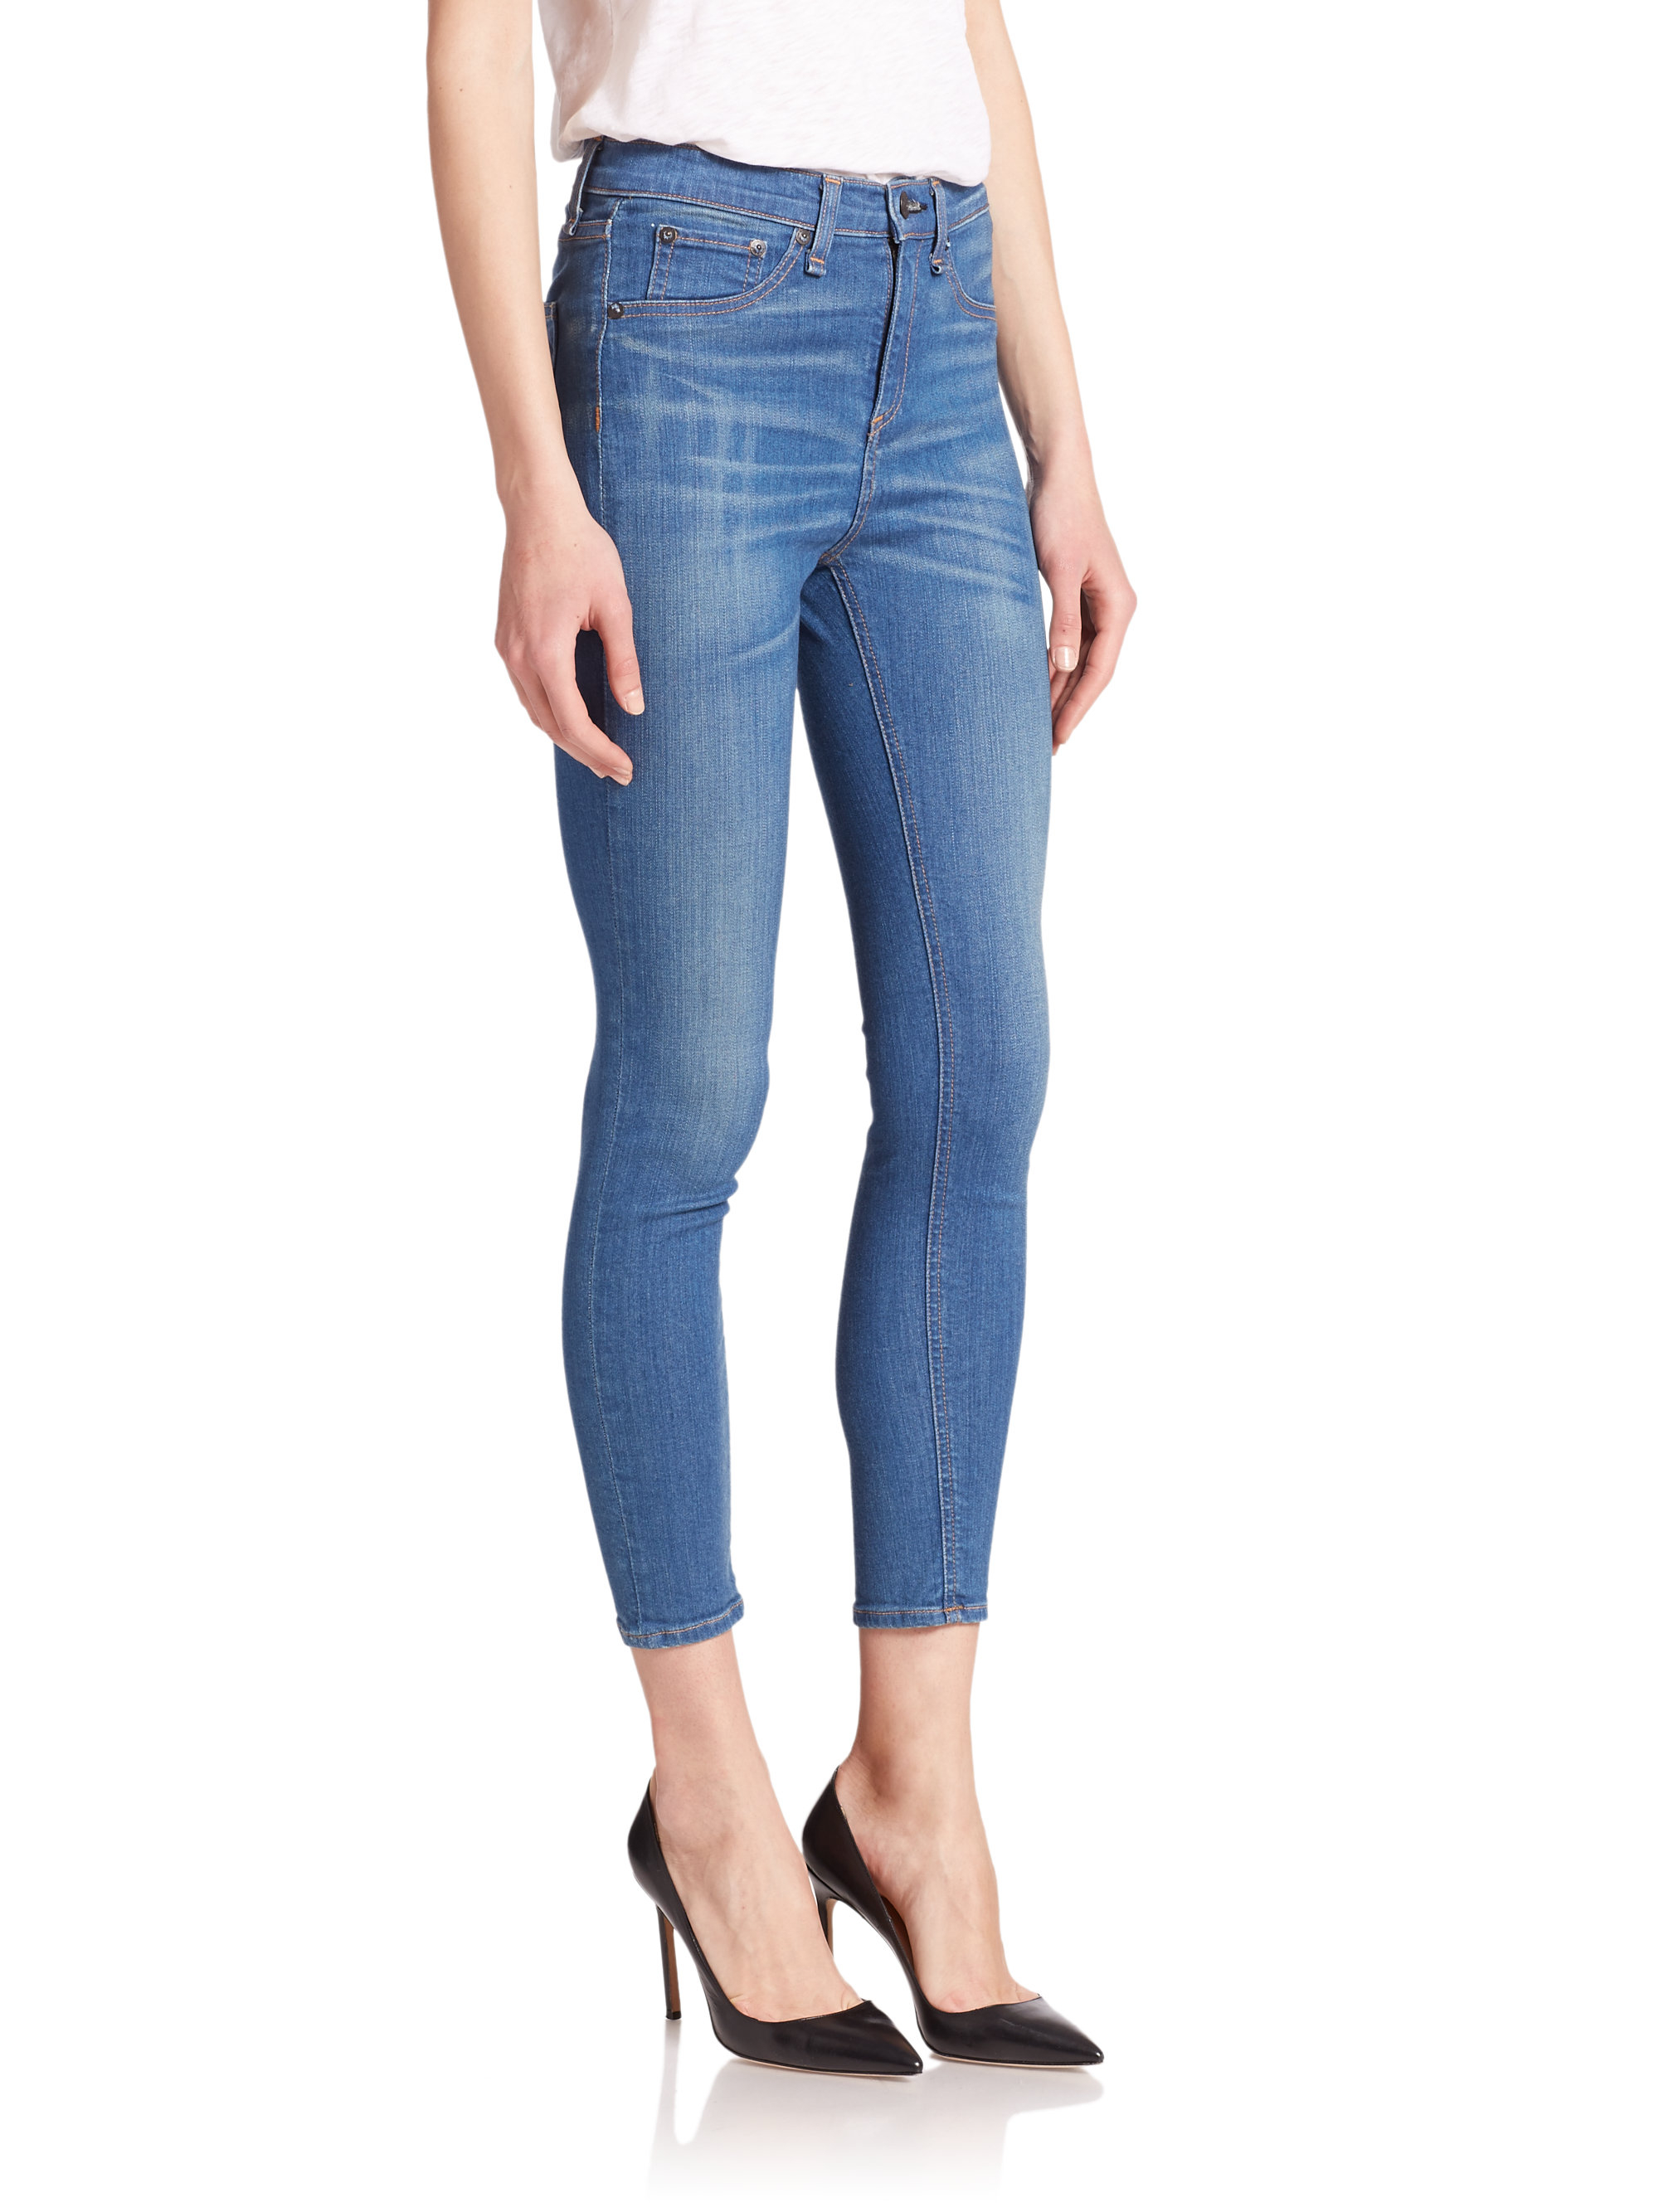 Rag & bone The High-rise Capri Skinny Jeans in Blue | Lyst